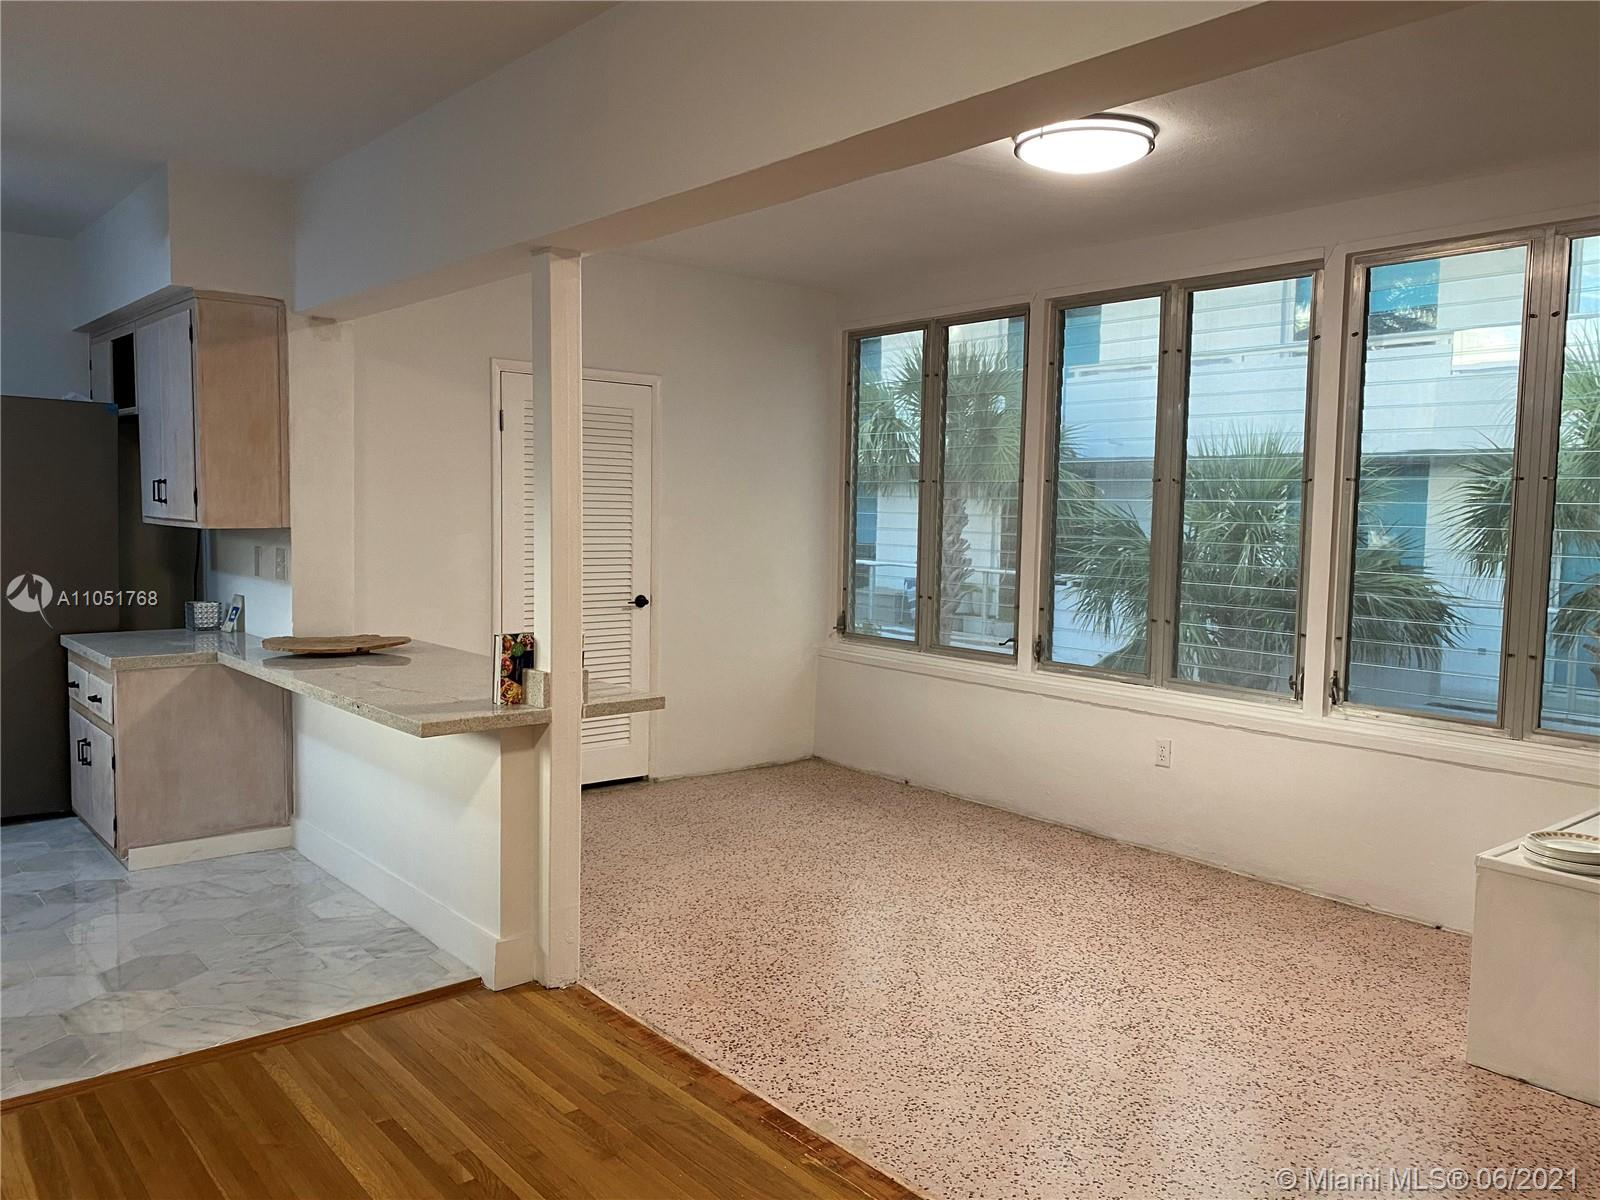 10081 W Bay Harbor Dr #4 For Sale A11051768, FL